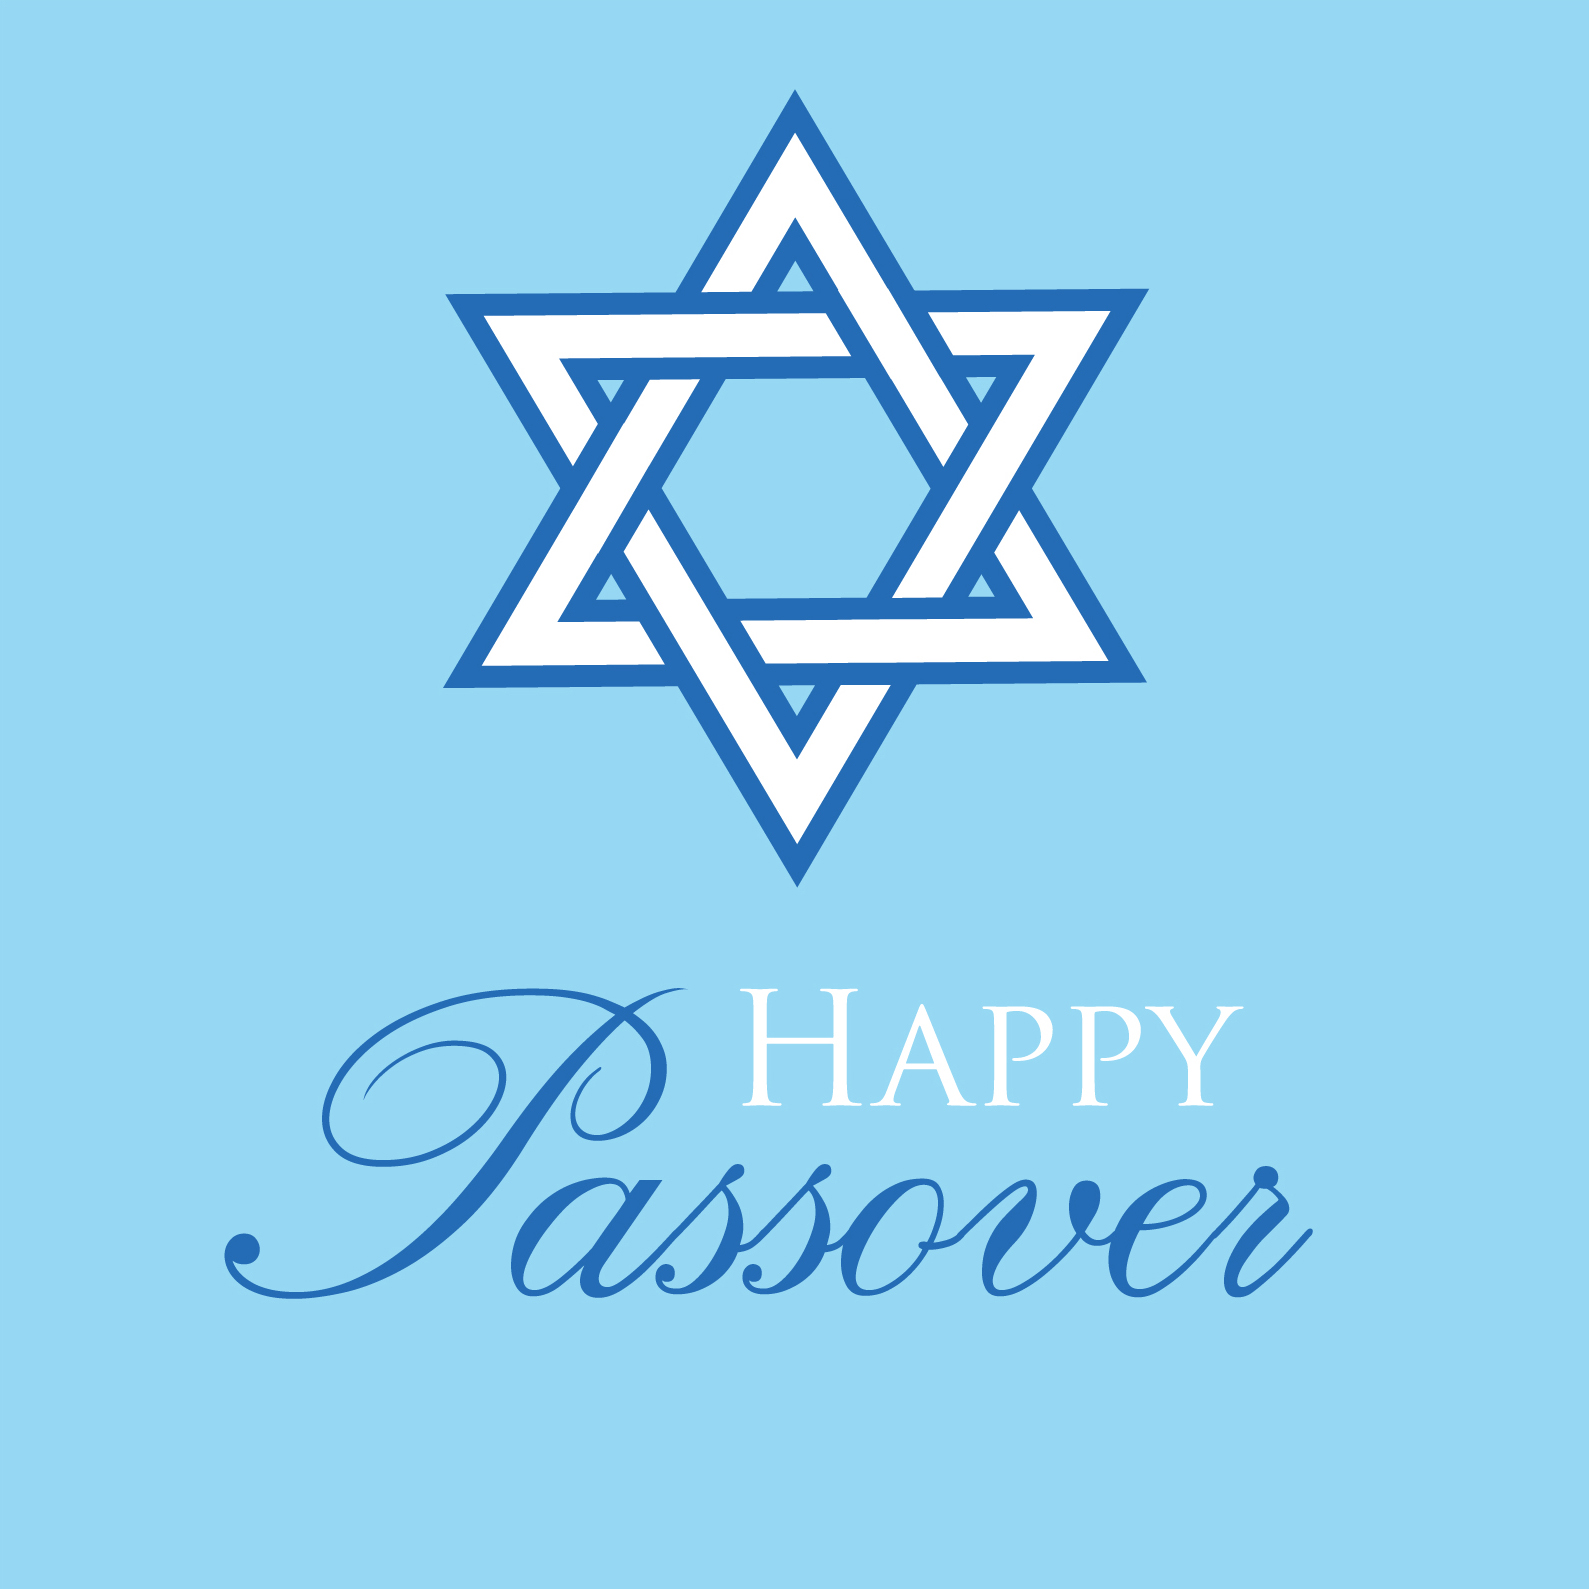 Passover greeting card by Ananya